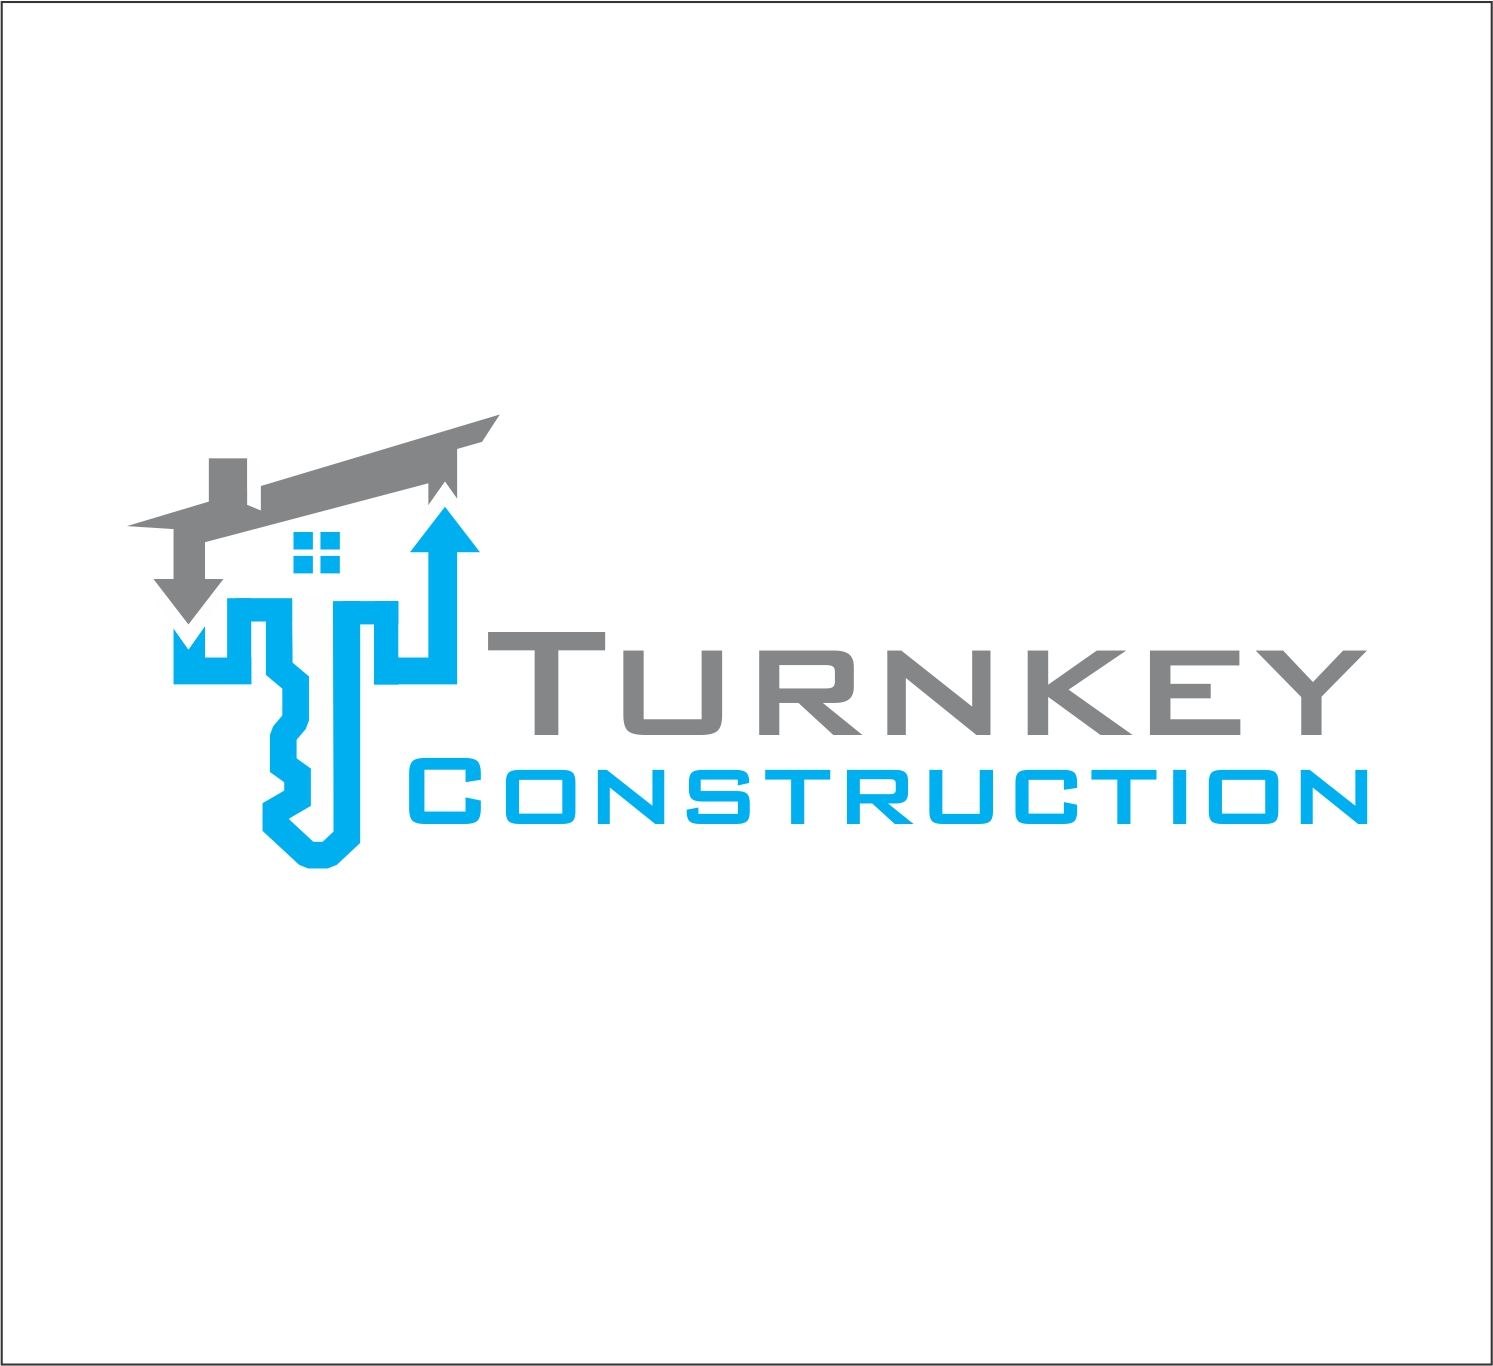 Commercial Lighting Company Tampa Fl: 159 Professional Logo Designs For Turnkey Construction A